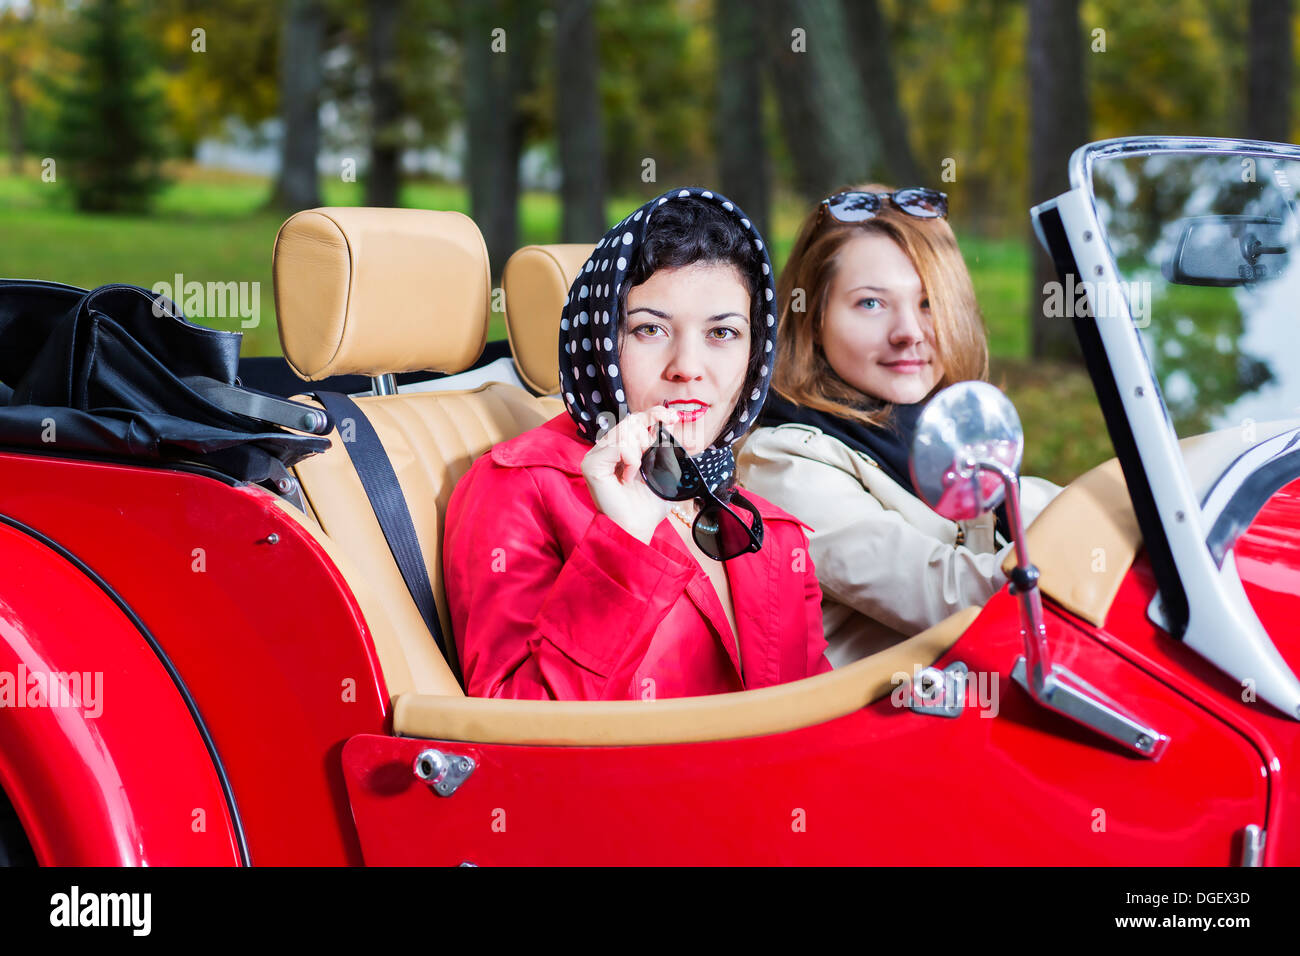 women at retro car look interested and satisfied - Stock Image